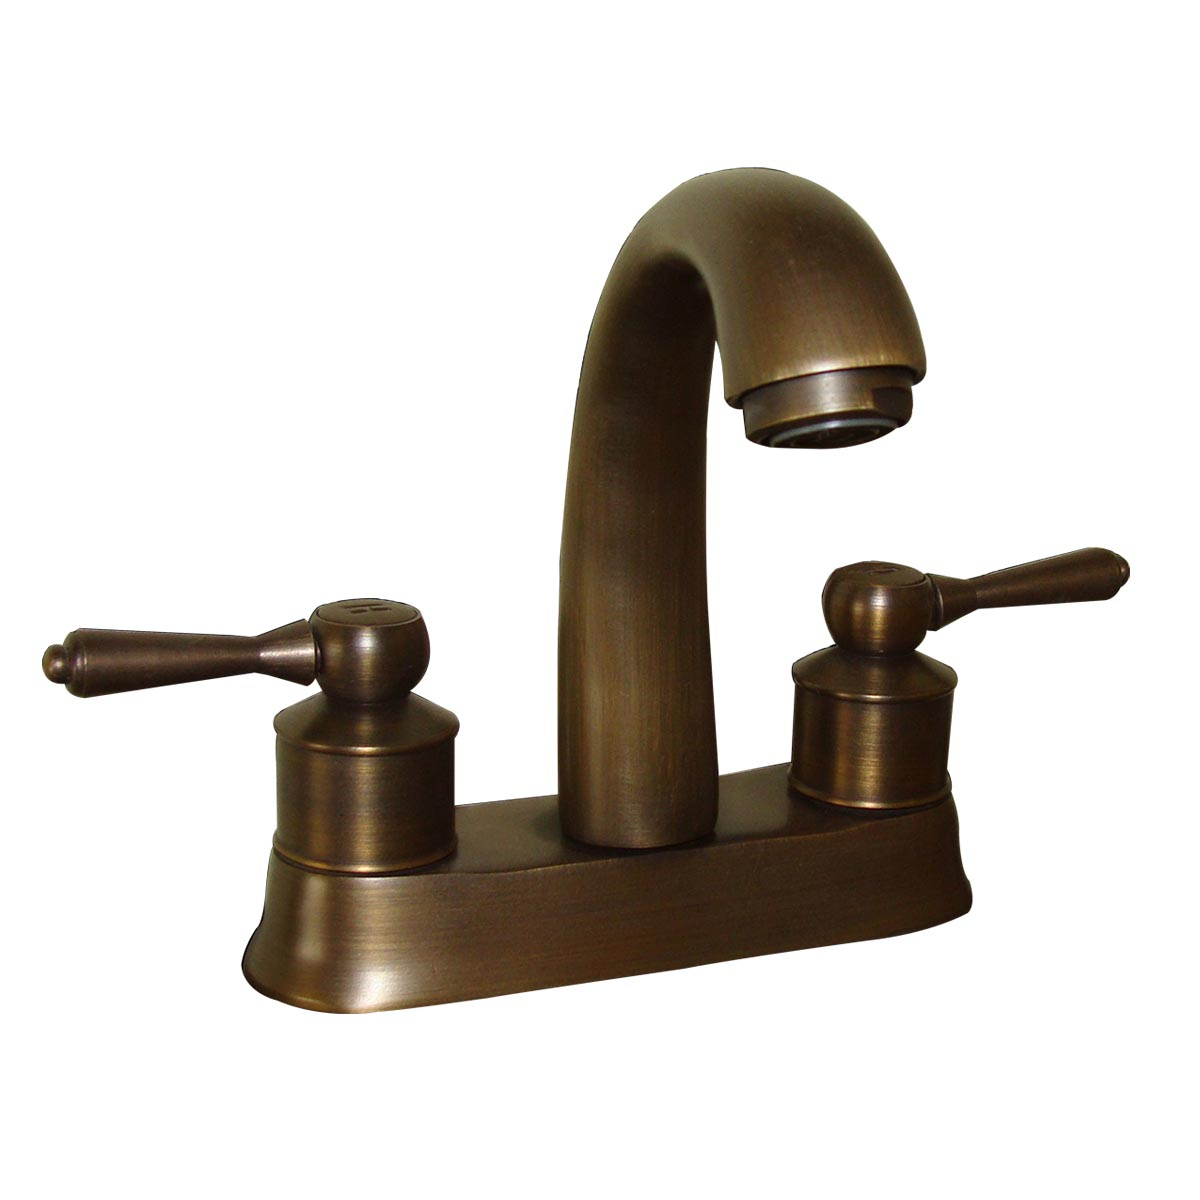 Classic Antique Brass Centerset Sink Faucet with 2 Lever